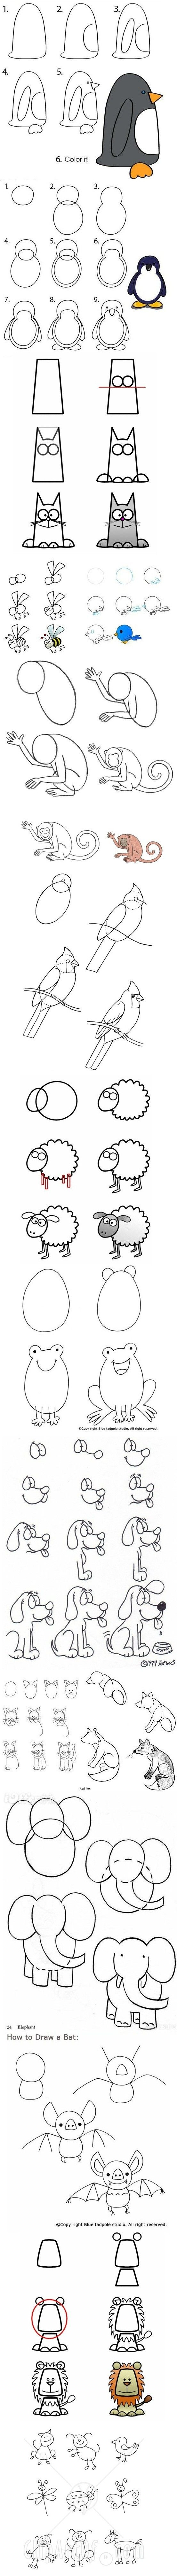 How to draw animals—great for (or to impress) kids.: Animal Drawings, Easy Drawings Of Animal, Easy Step By Step Drawings, For Kids, Drawings Animal, Things To Drawings Easy, Easy Drawings Of Love, How To Drawings, Drawings Tutorials